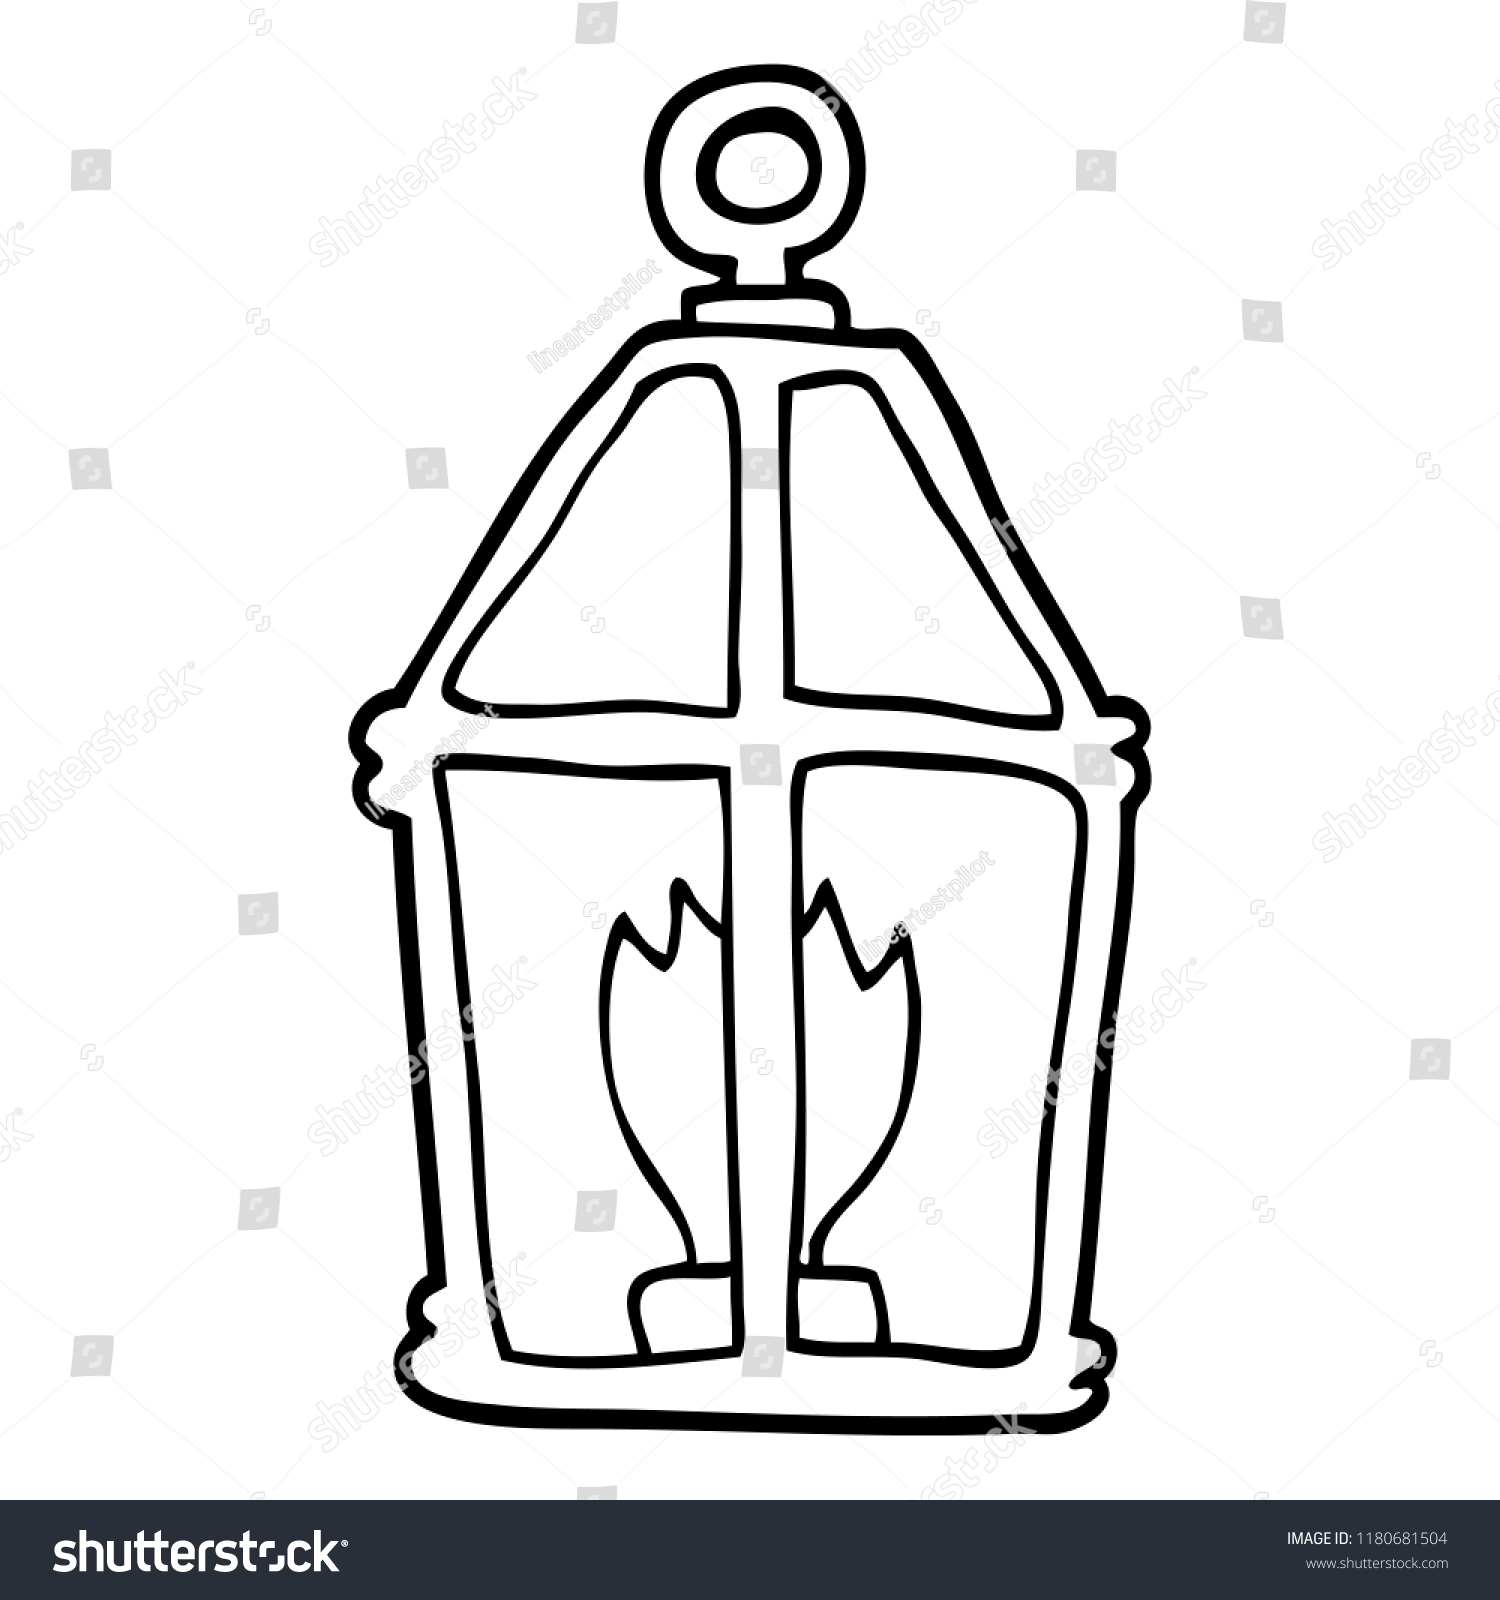 Line Drawing Cartoon Old Lantern Stock Illustration 1180681504